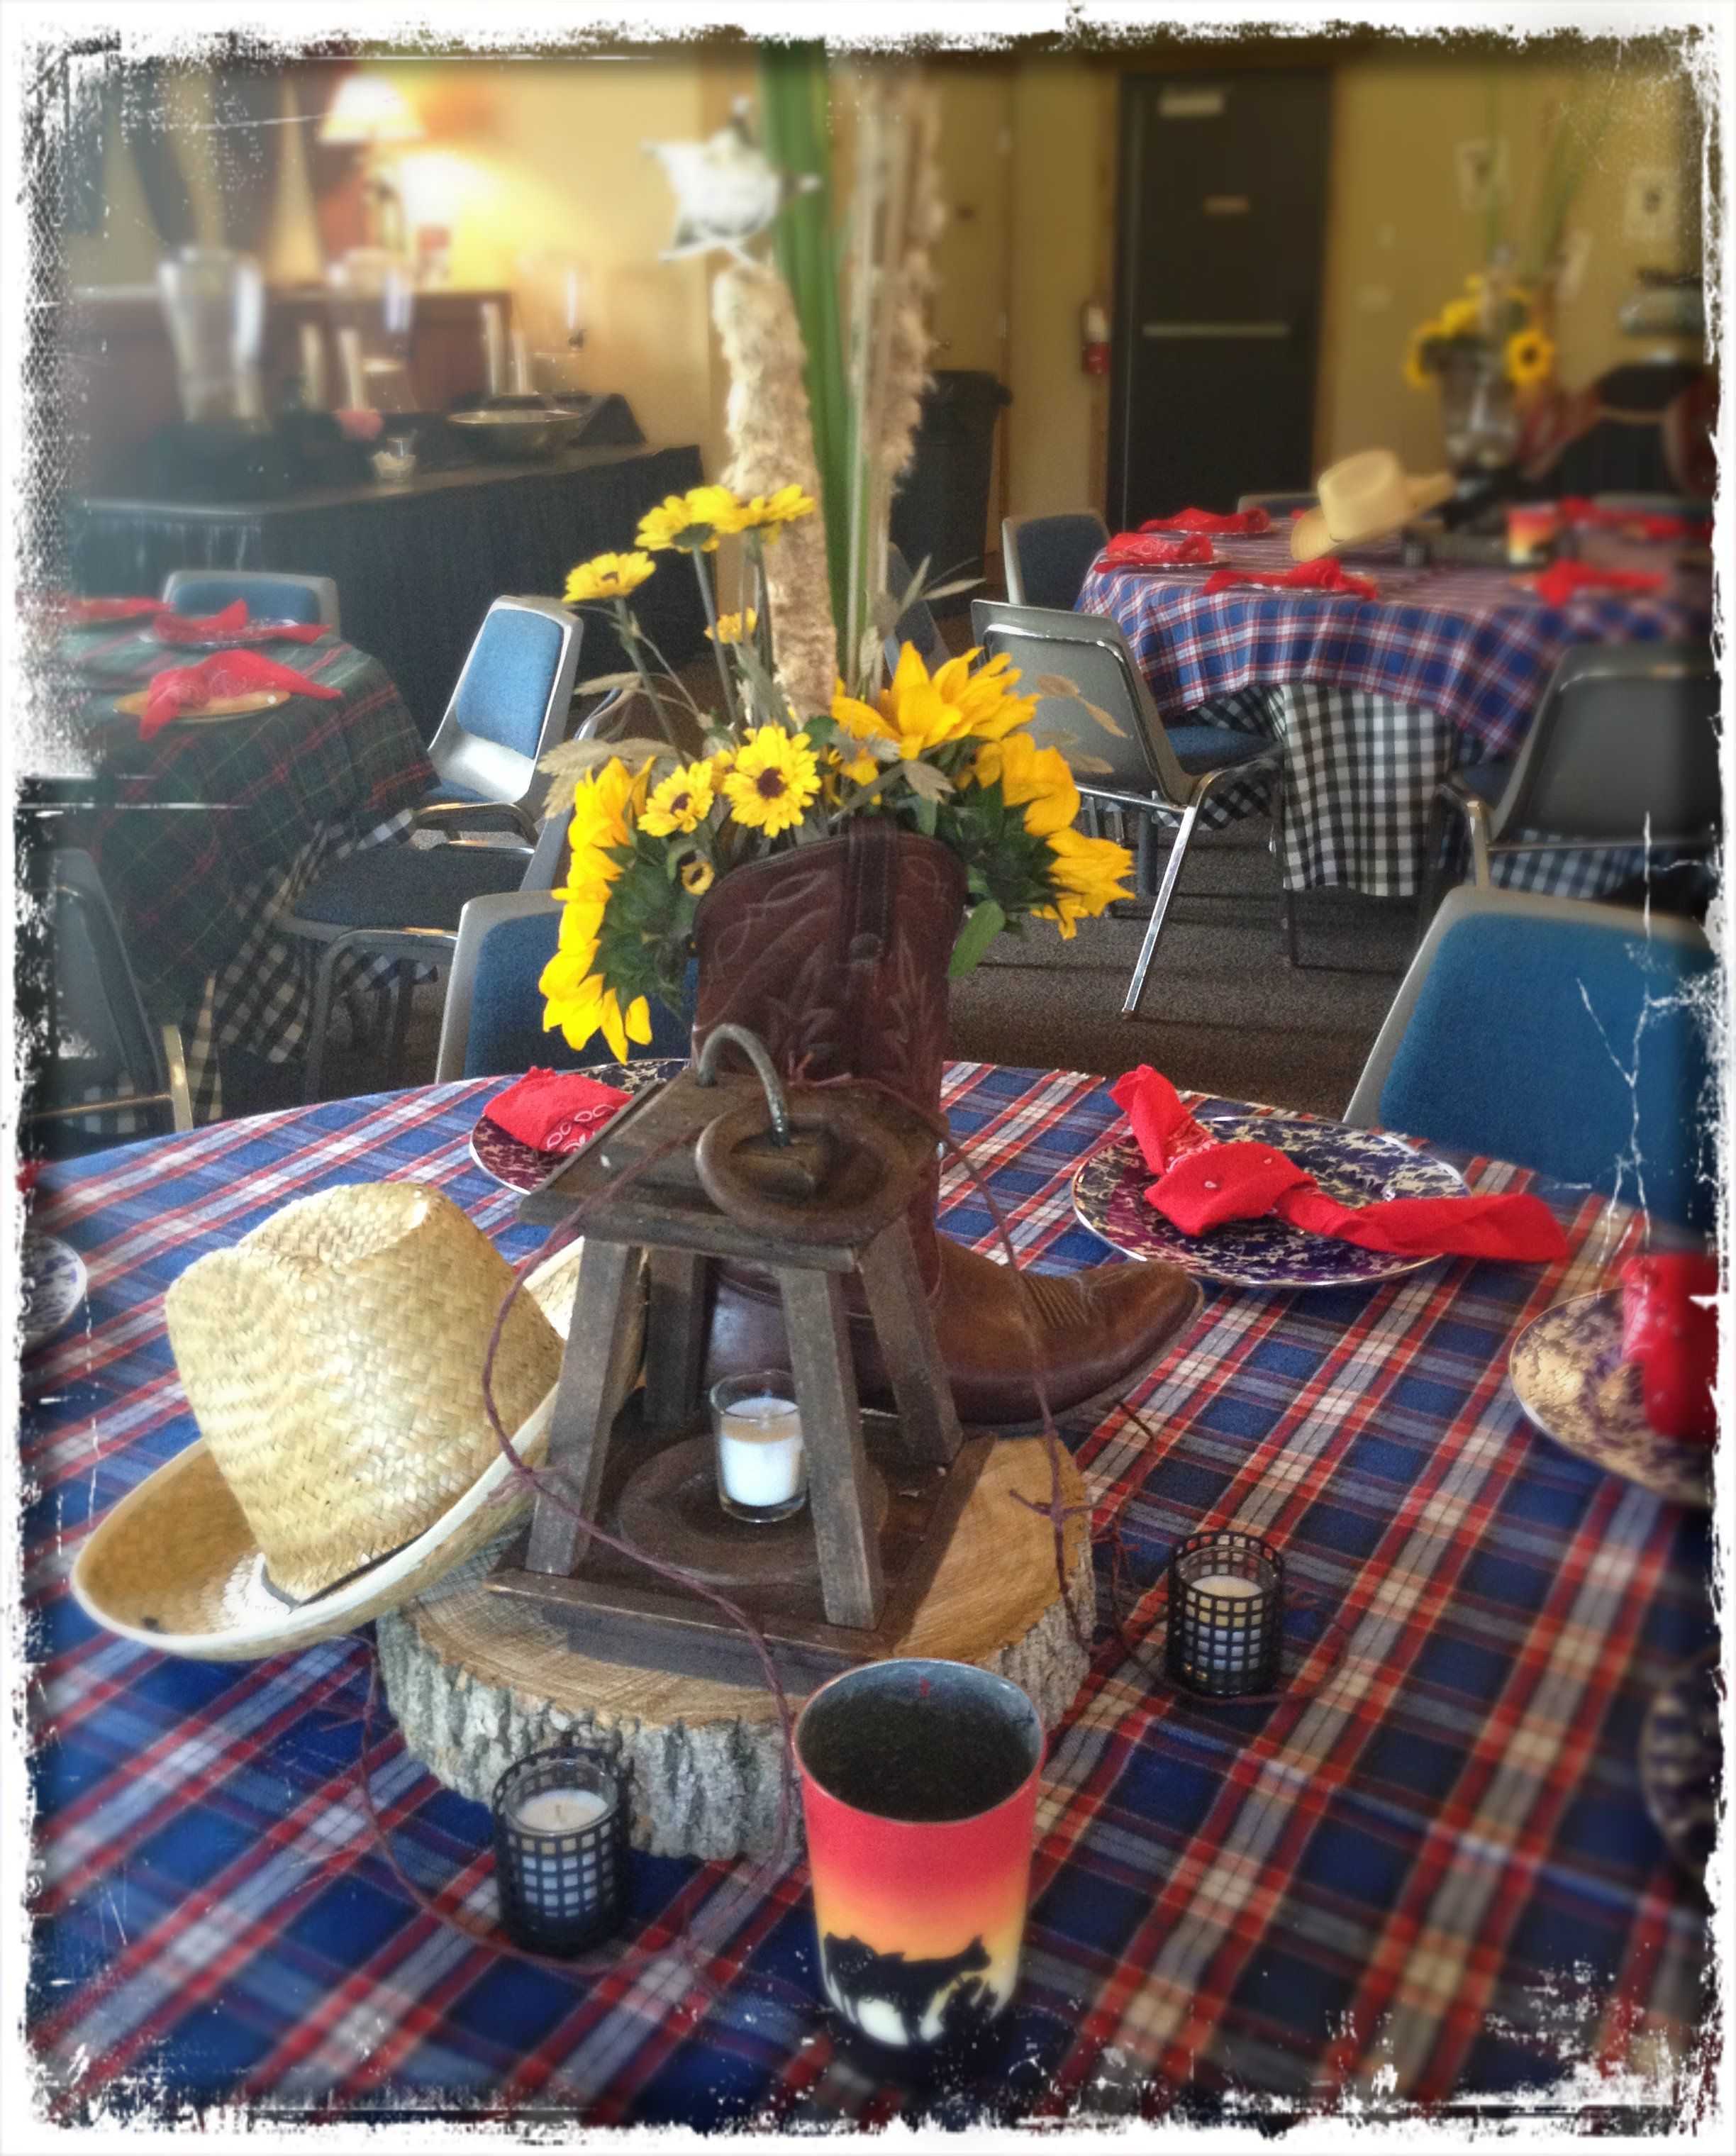 Exceptional Western Theme Party Decoration Ideas Part - 4: Awesome Country Western Themed Centerpieces And Table Settings @ Faulkneru0027s  Ranch. Check Out All Of